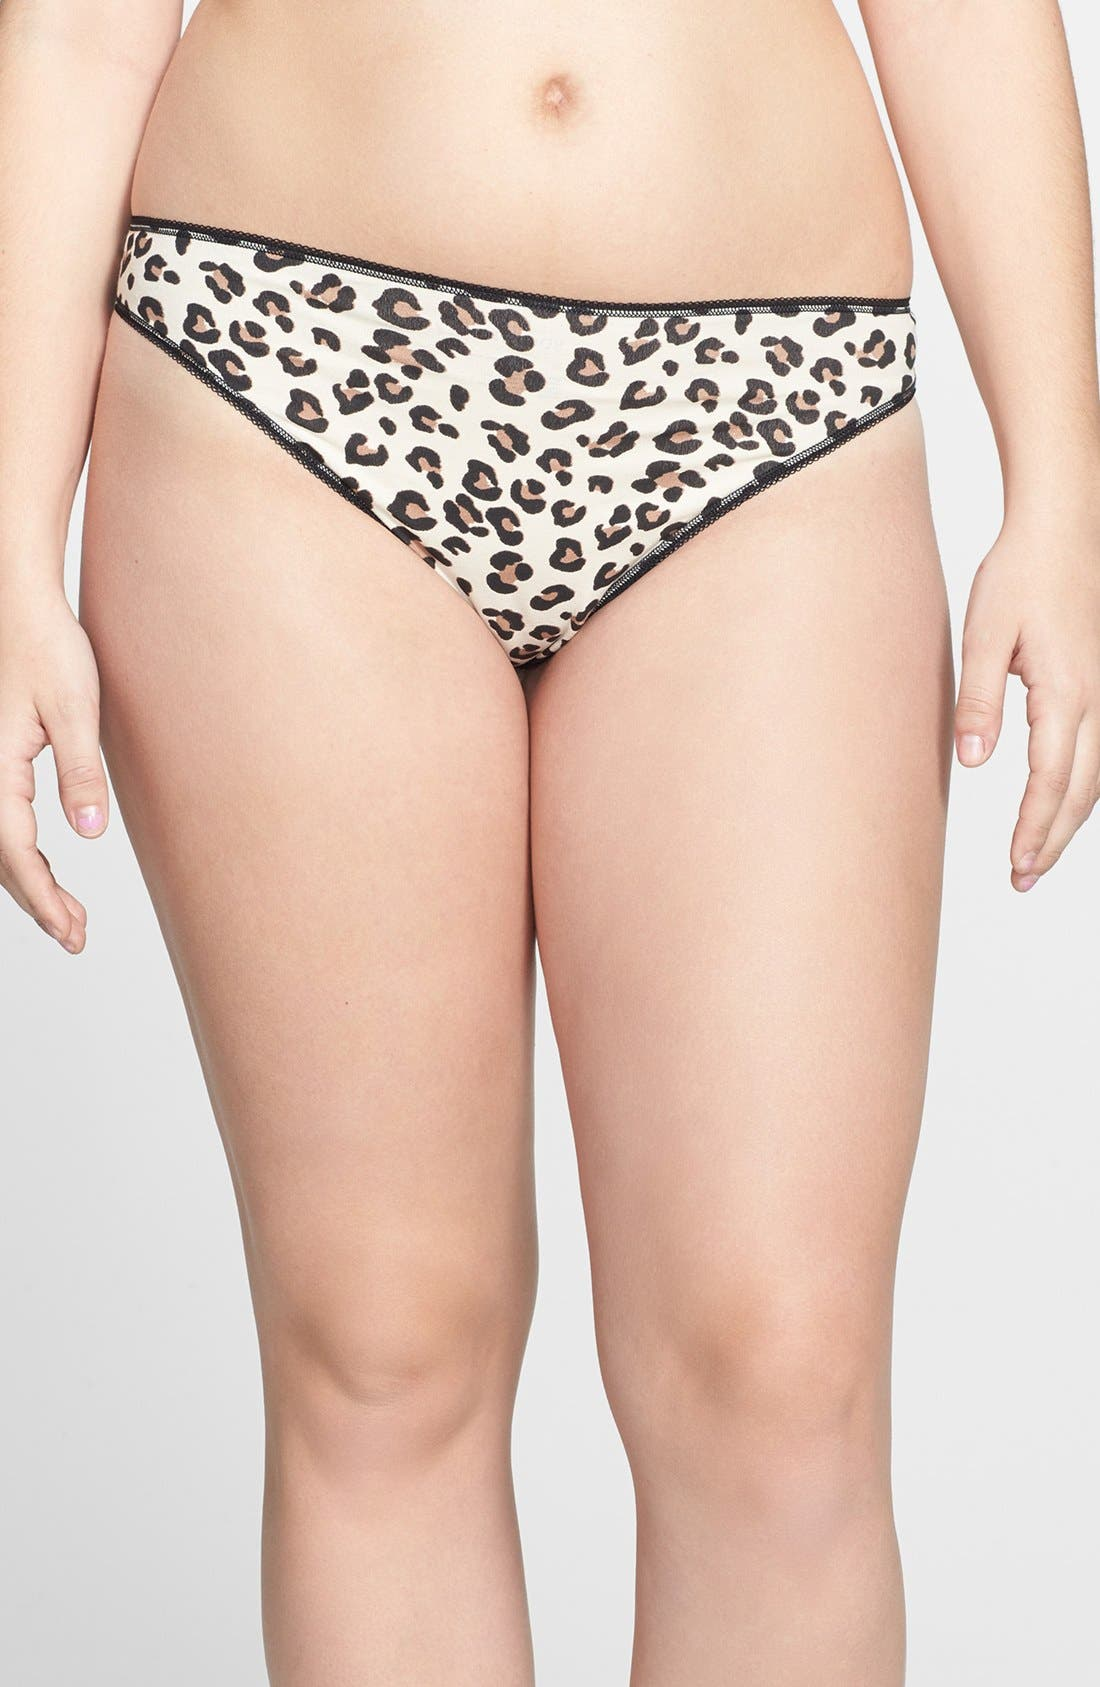 Main Image - Nordstrom Cotton Blend Thong (Plus Size) (3 for $25)